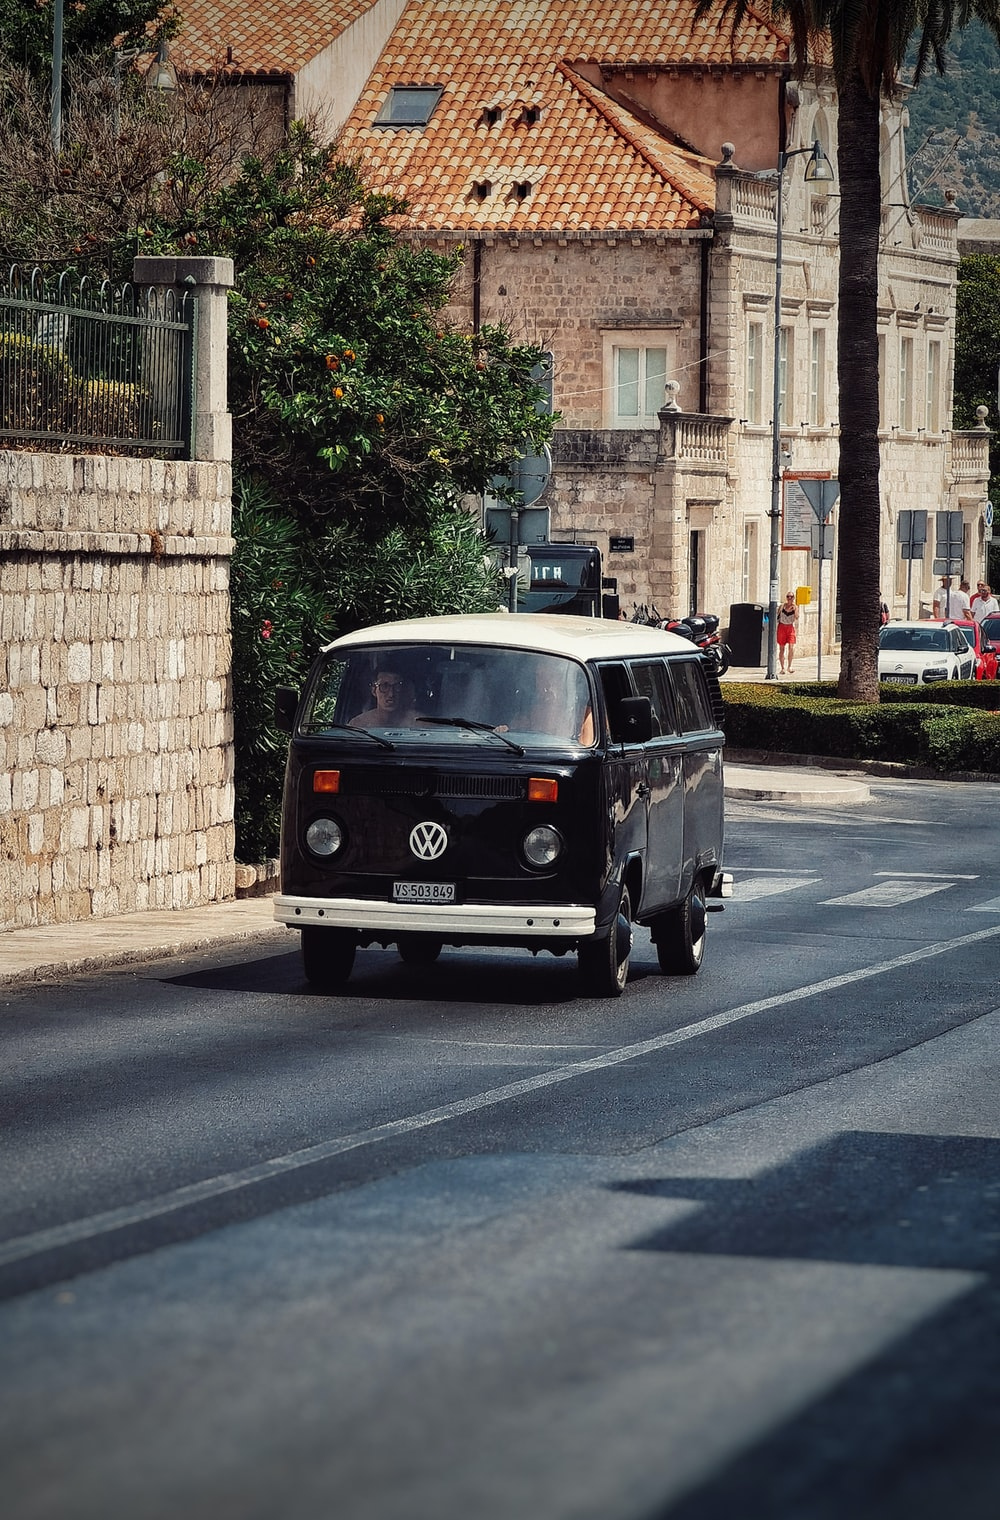 black and white volkswagen t-2 parked beside brown brick building during daytime